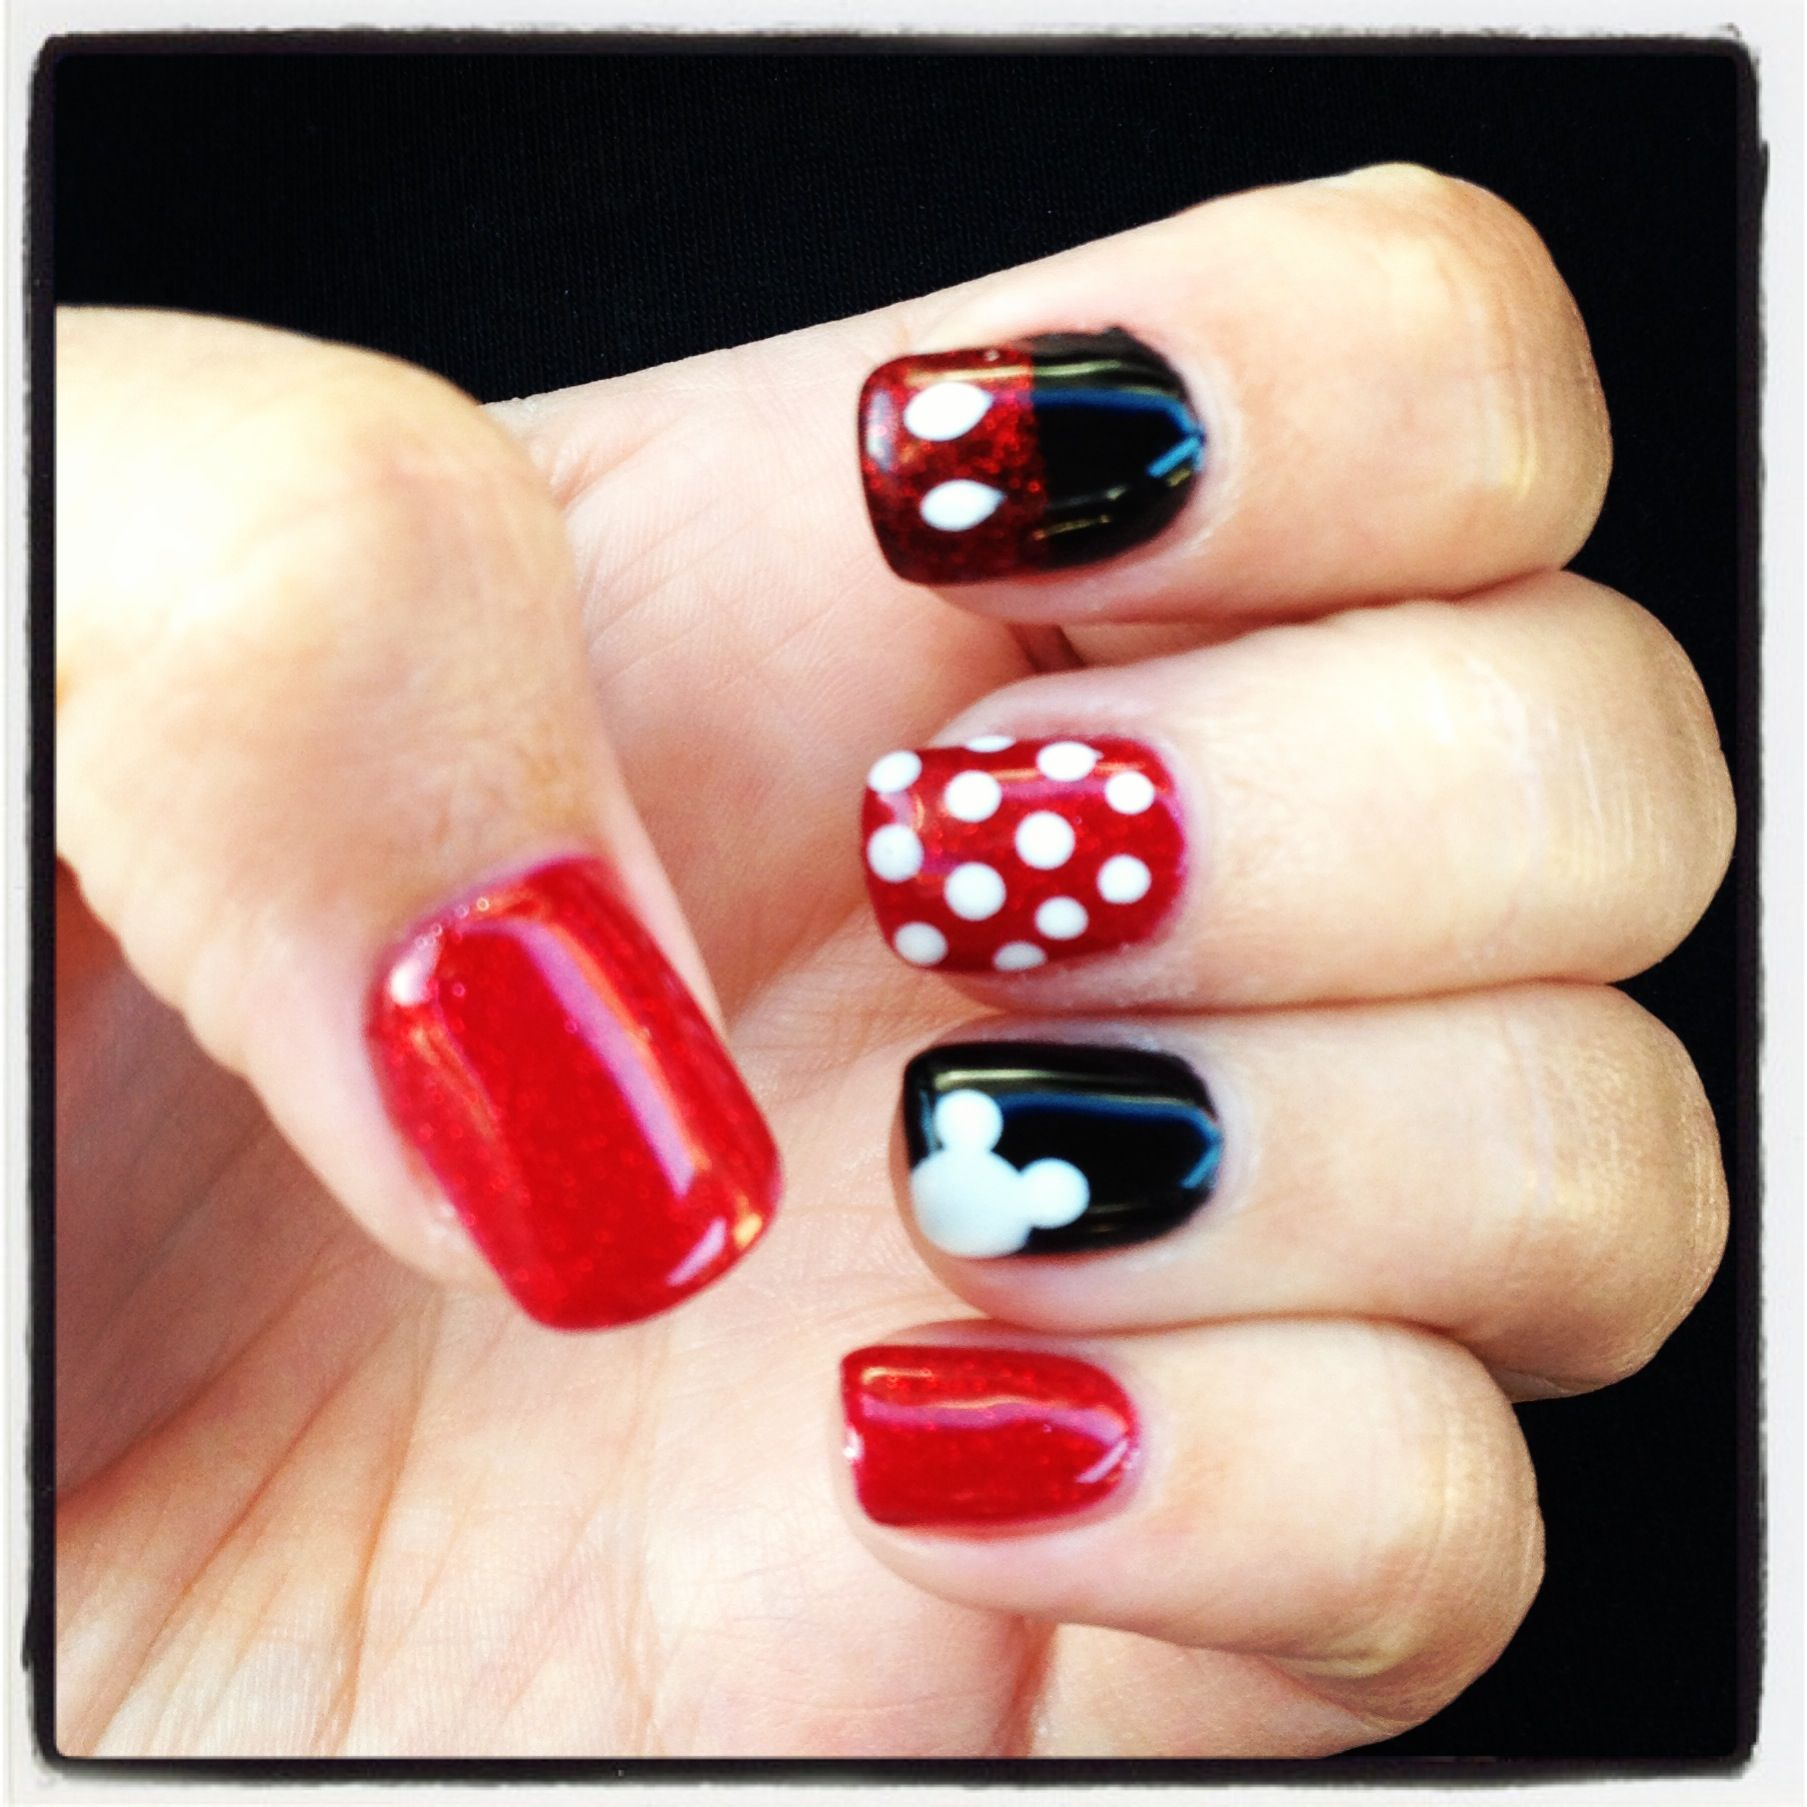 Maybe just the one nail with the white Mickey head shadow... Please visit our website @ http://rainbowloomsale.com